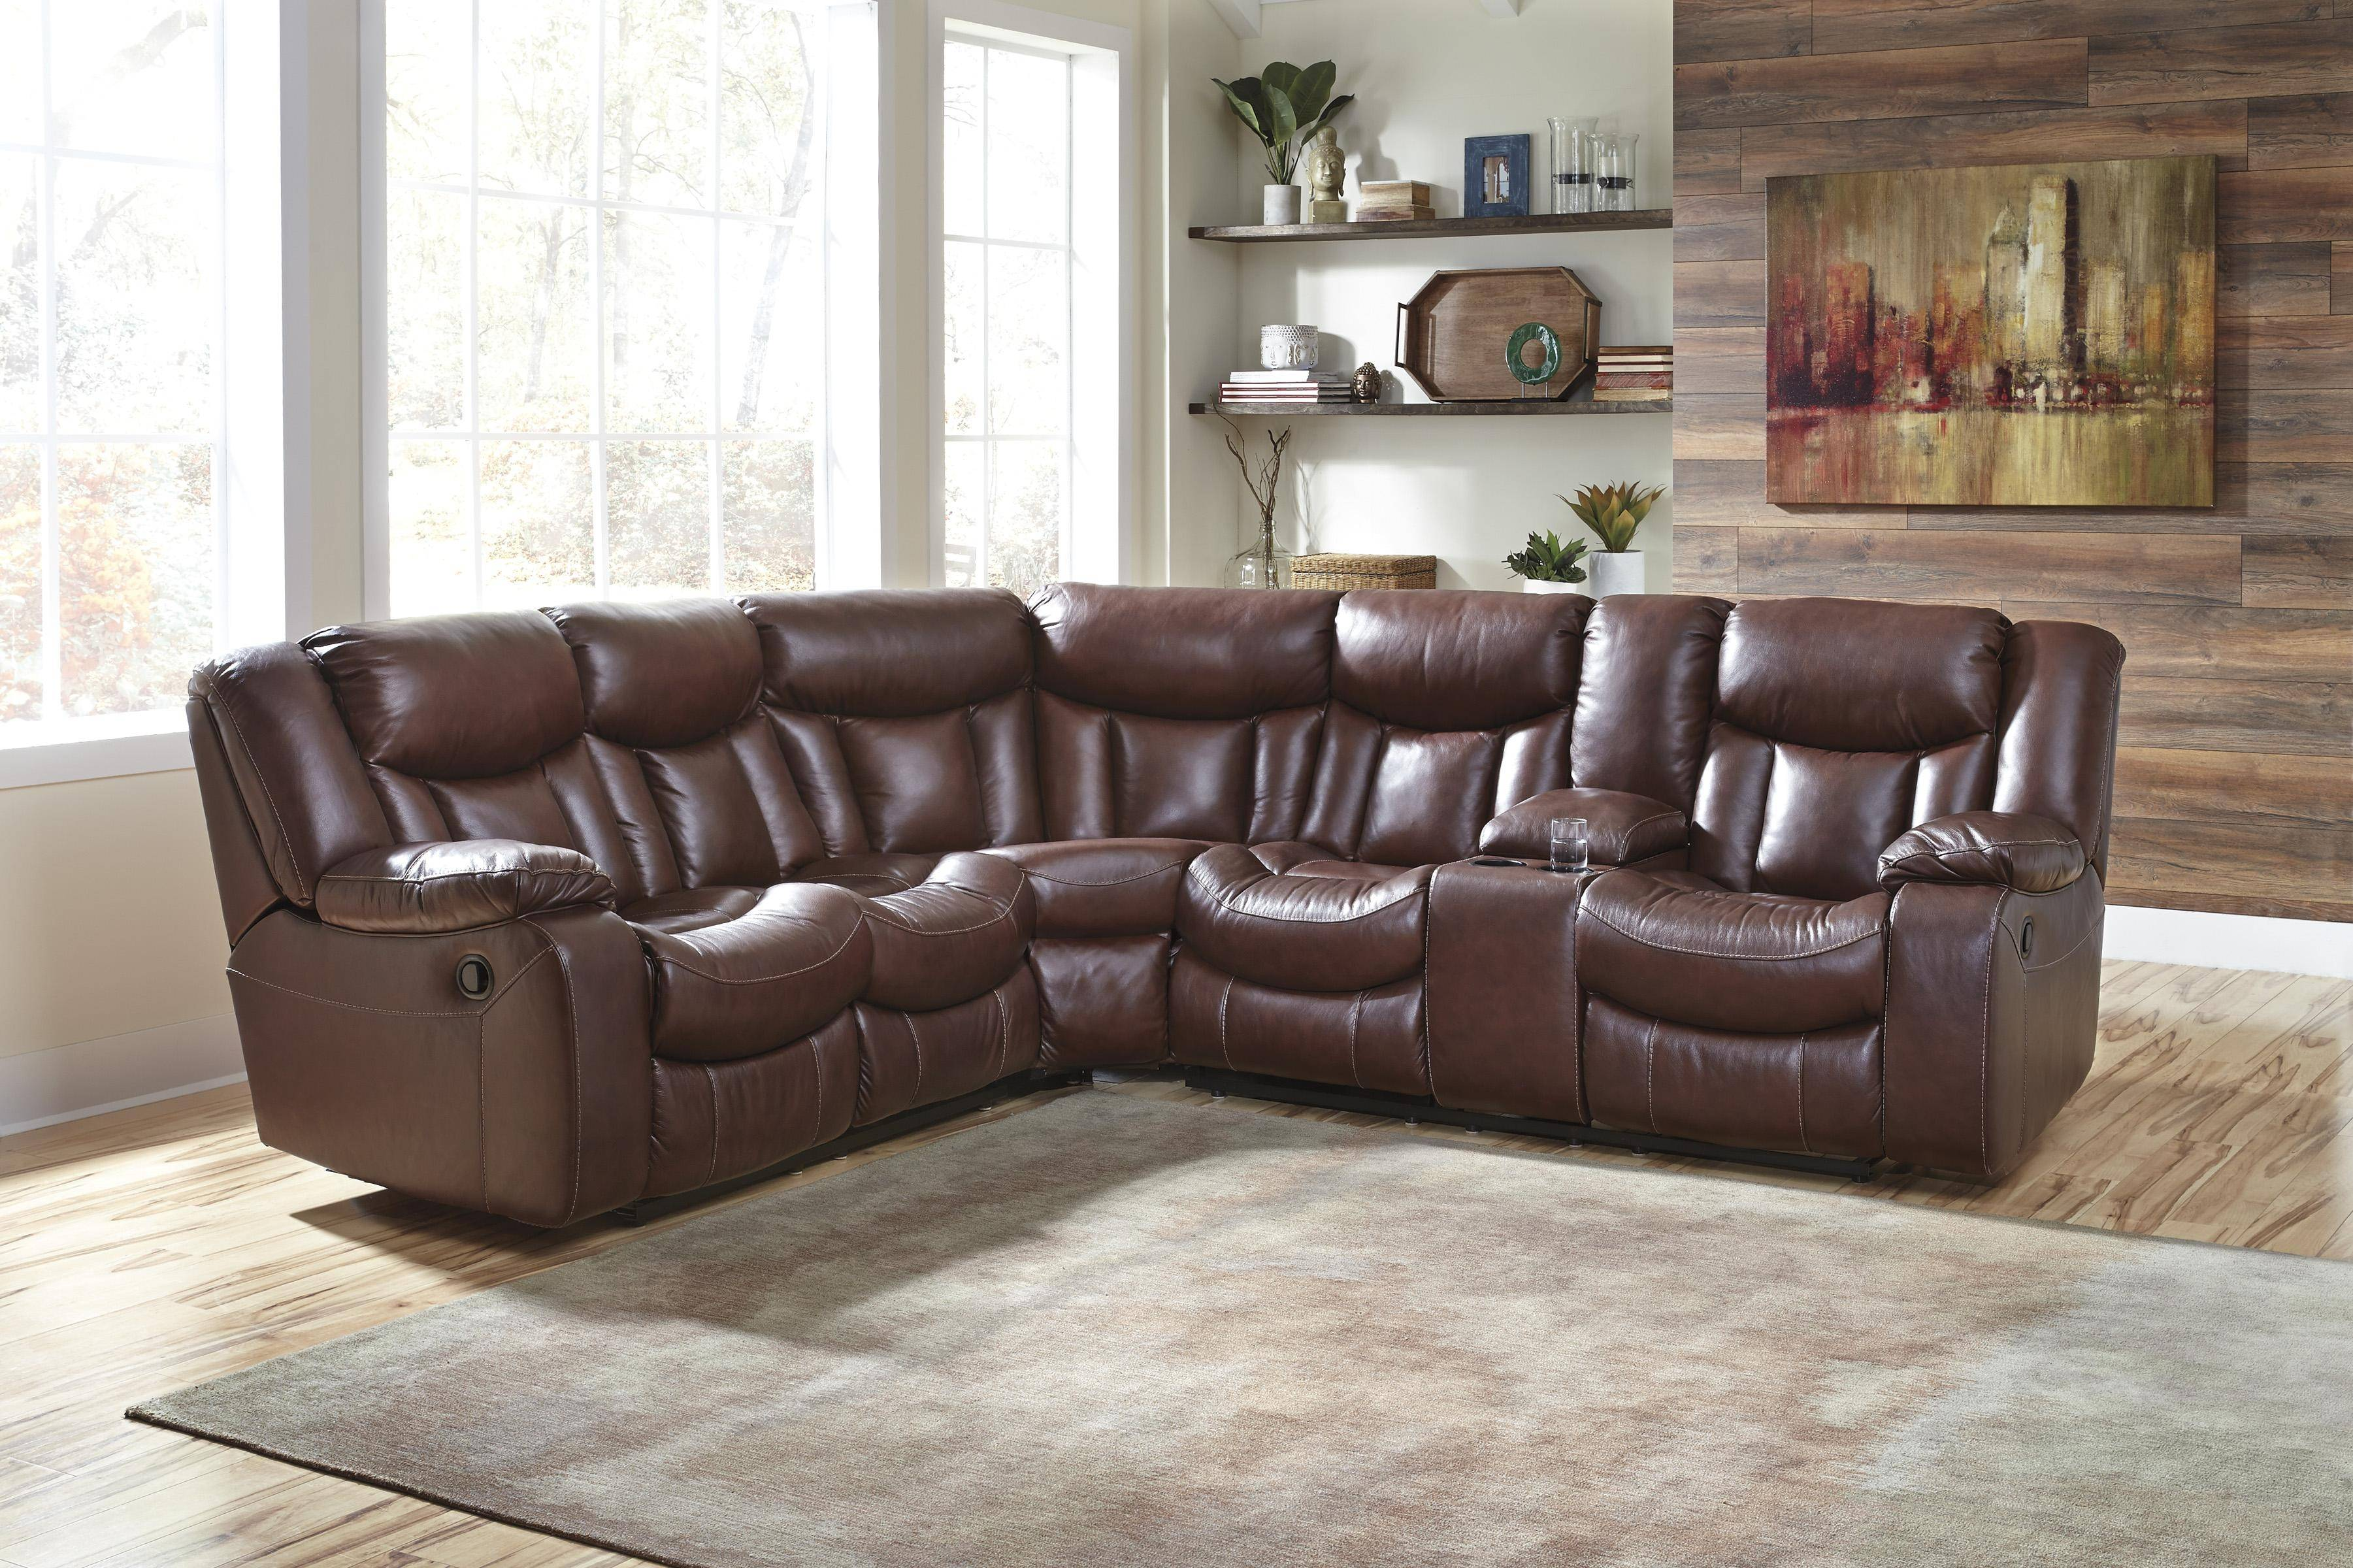 Ashley Amaroo 2 Piece Sectional In Brown 13610 48 49 Kit Buy Online